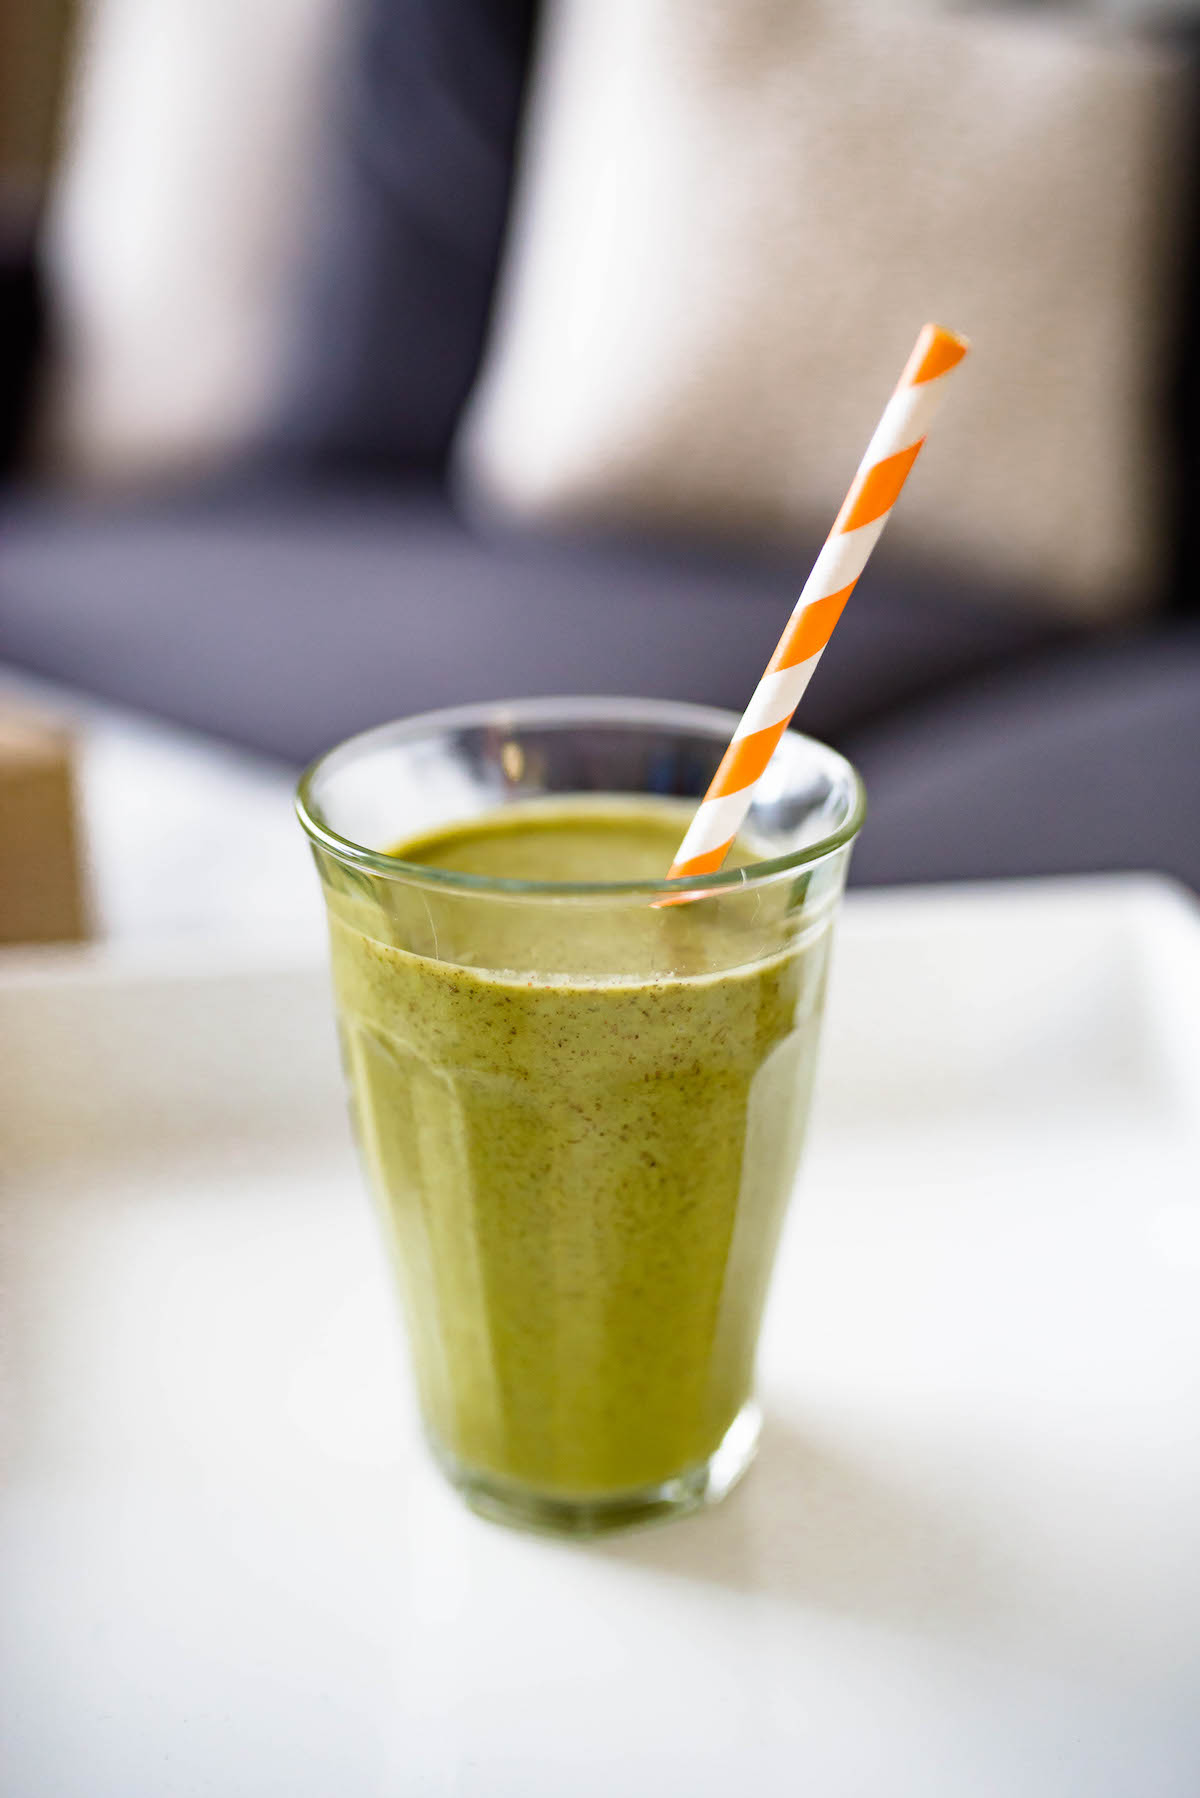 3 Healthy Smoothie Recipes That Even Fruit & Veggie Haters Would Enjoy